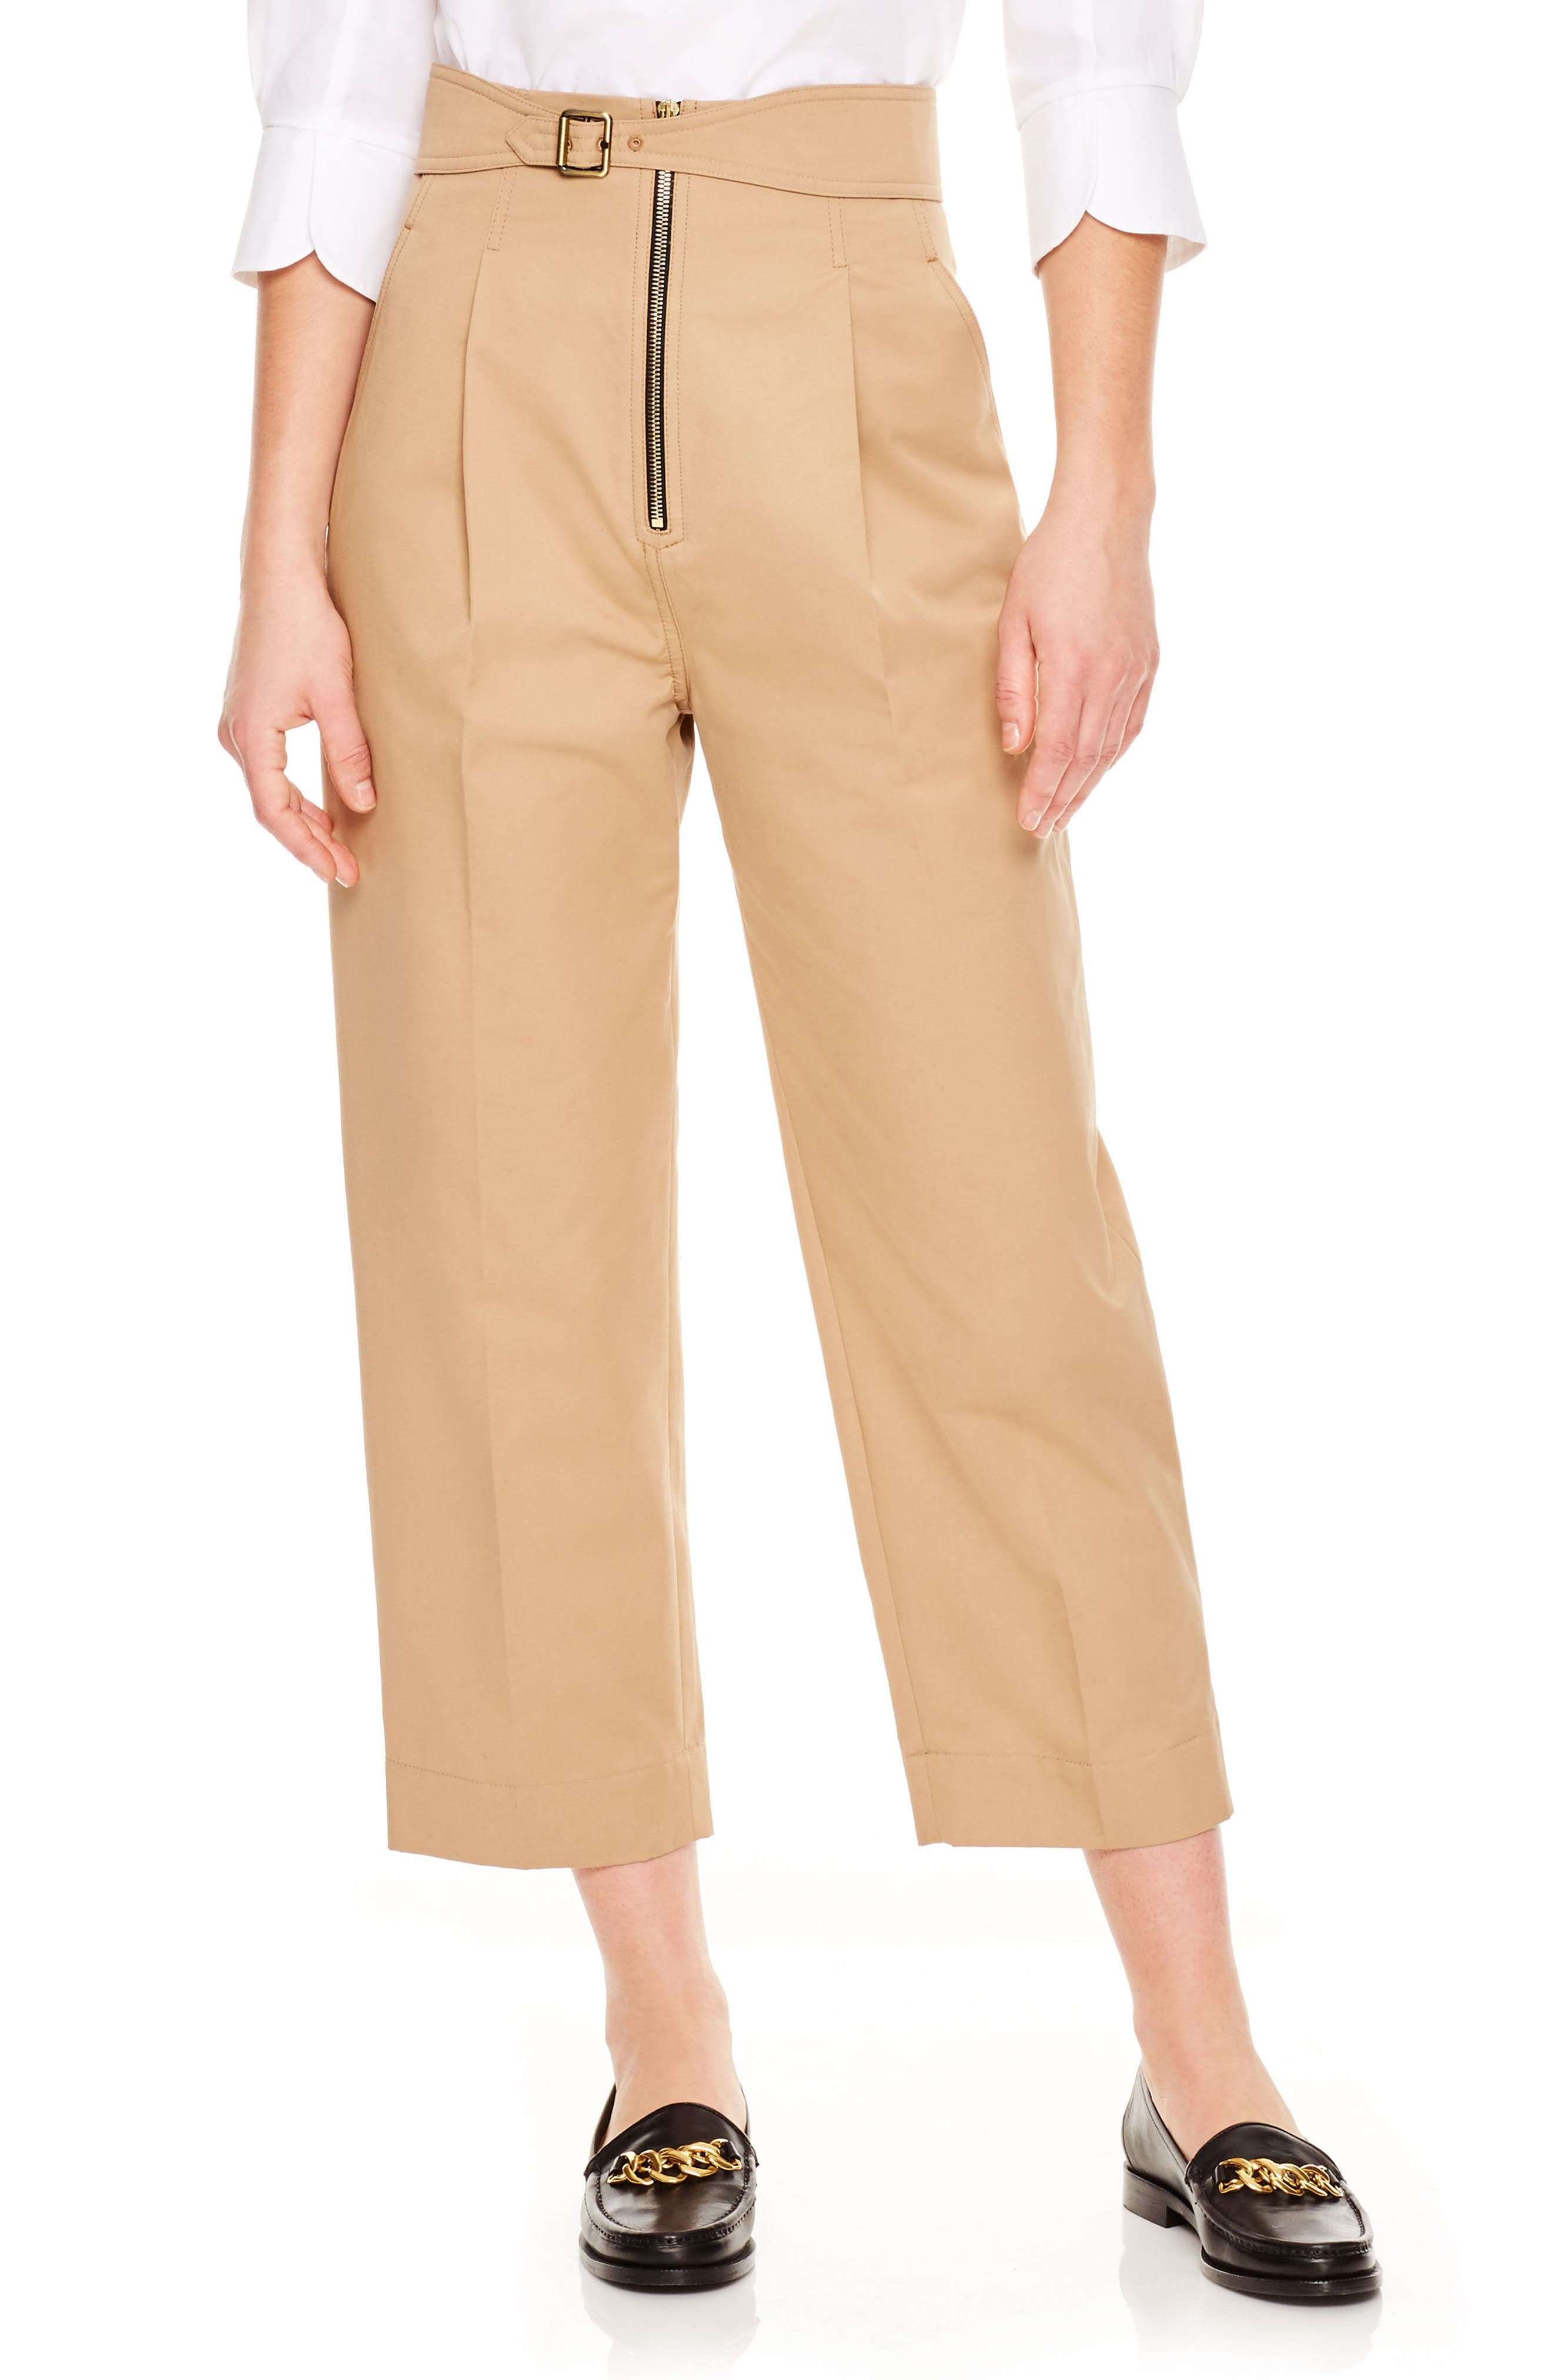 Beige Wide Leg Crop Pants,                             Main thumbnail 1, color,                             250